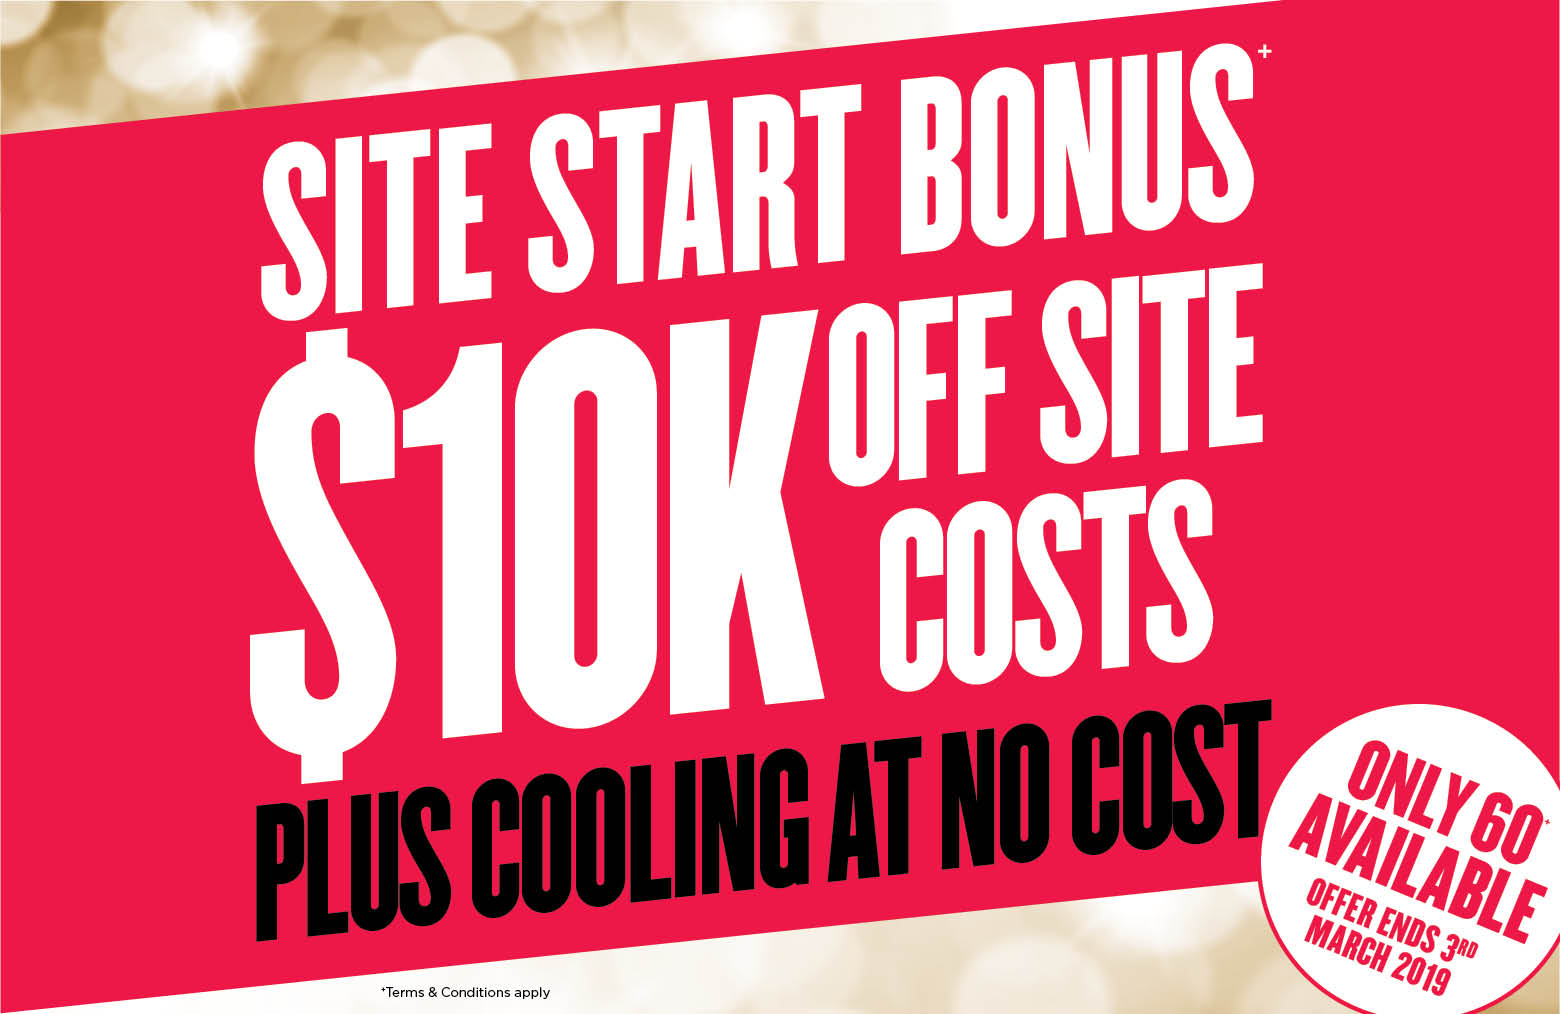 CH19 0012 BIg Deal 10K off site costs Web assets 1560x1014